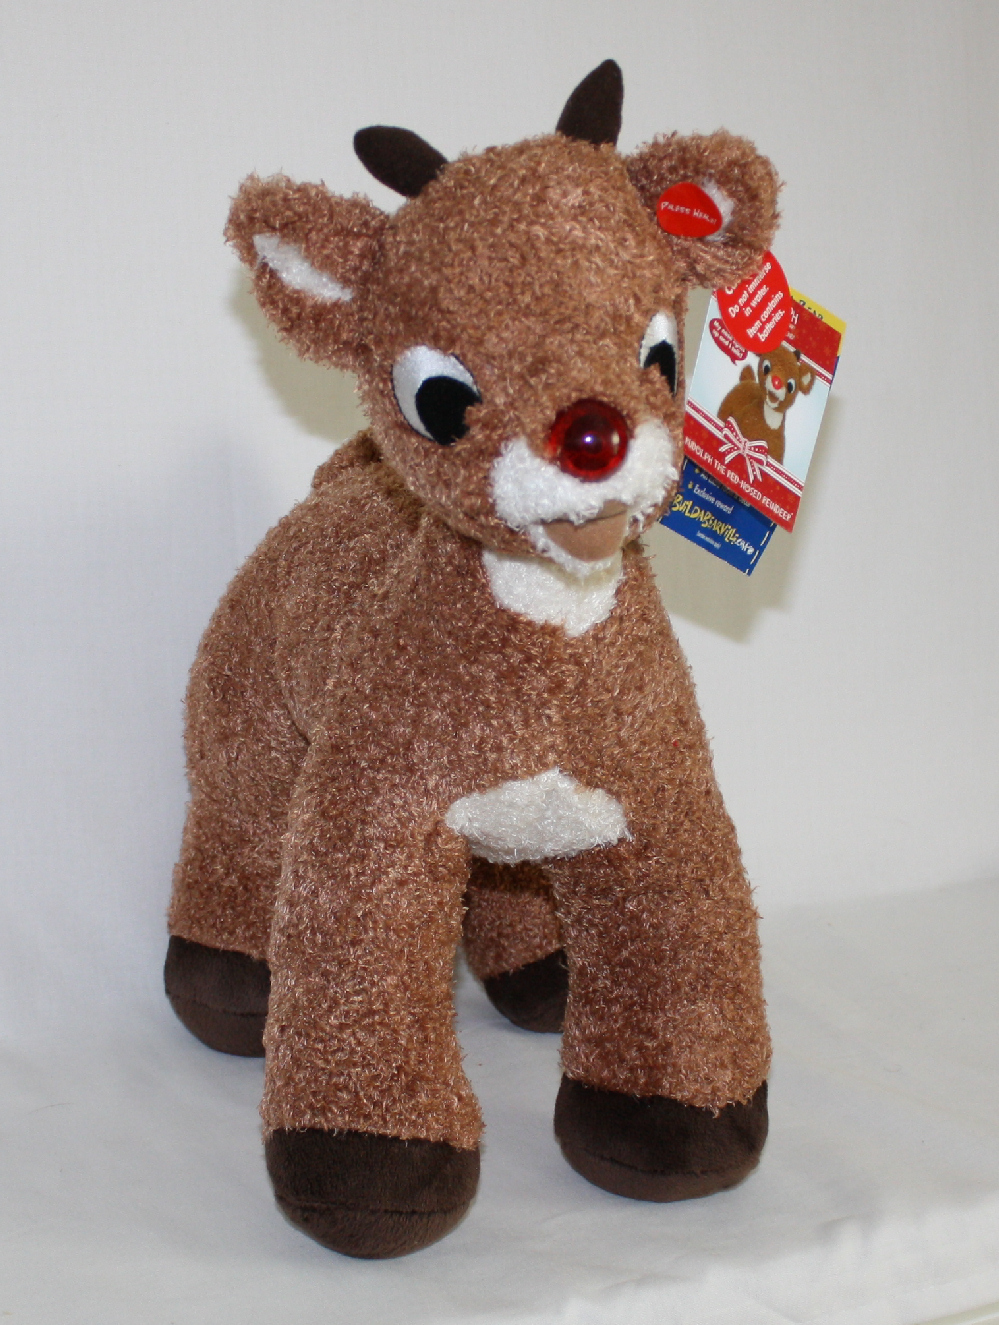 Rudolph Red-Nosed Reindeer Build a Bear Plush Toy